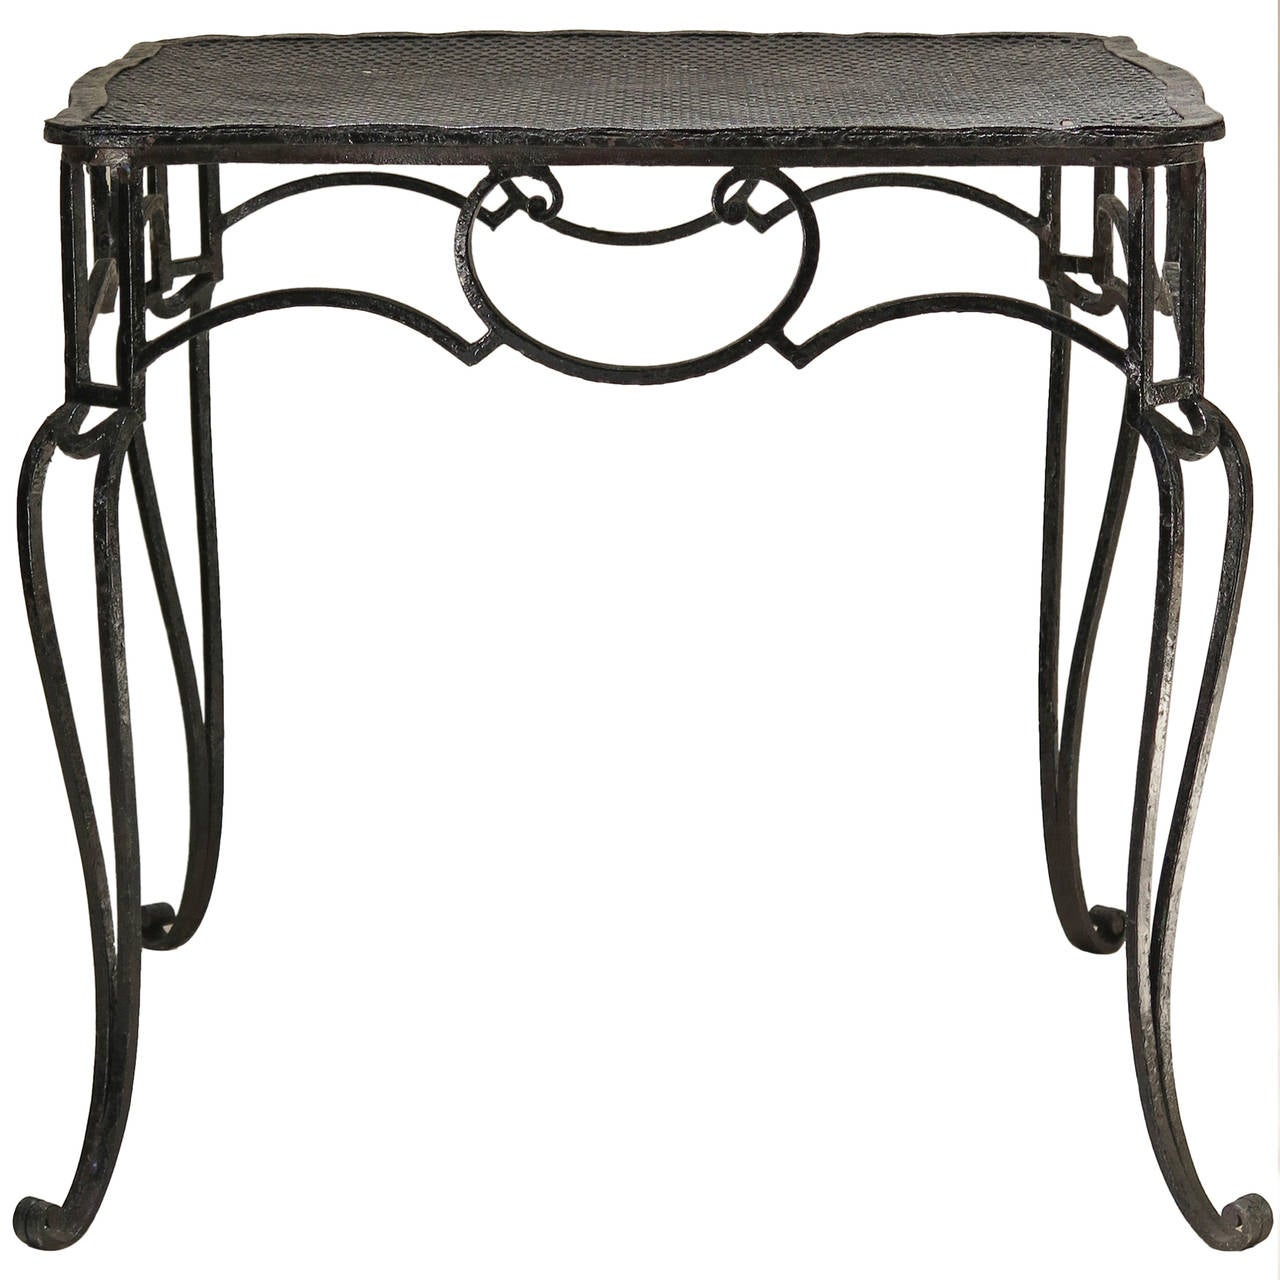 Baroque Wrought Iron Table by J.-C. Moreux - France, 1930s